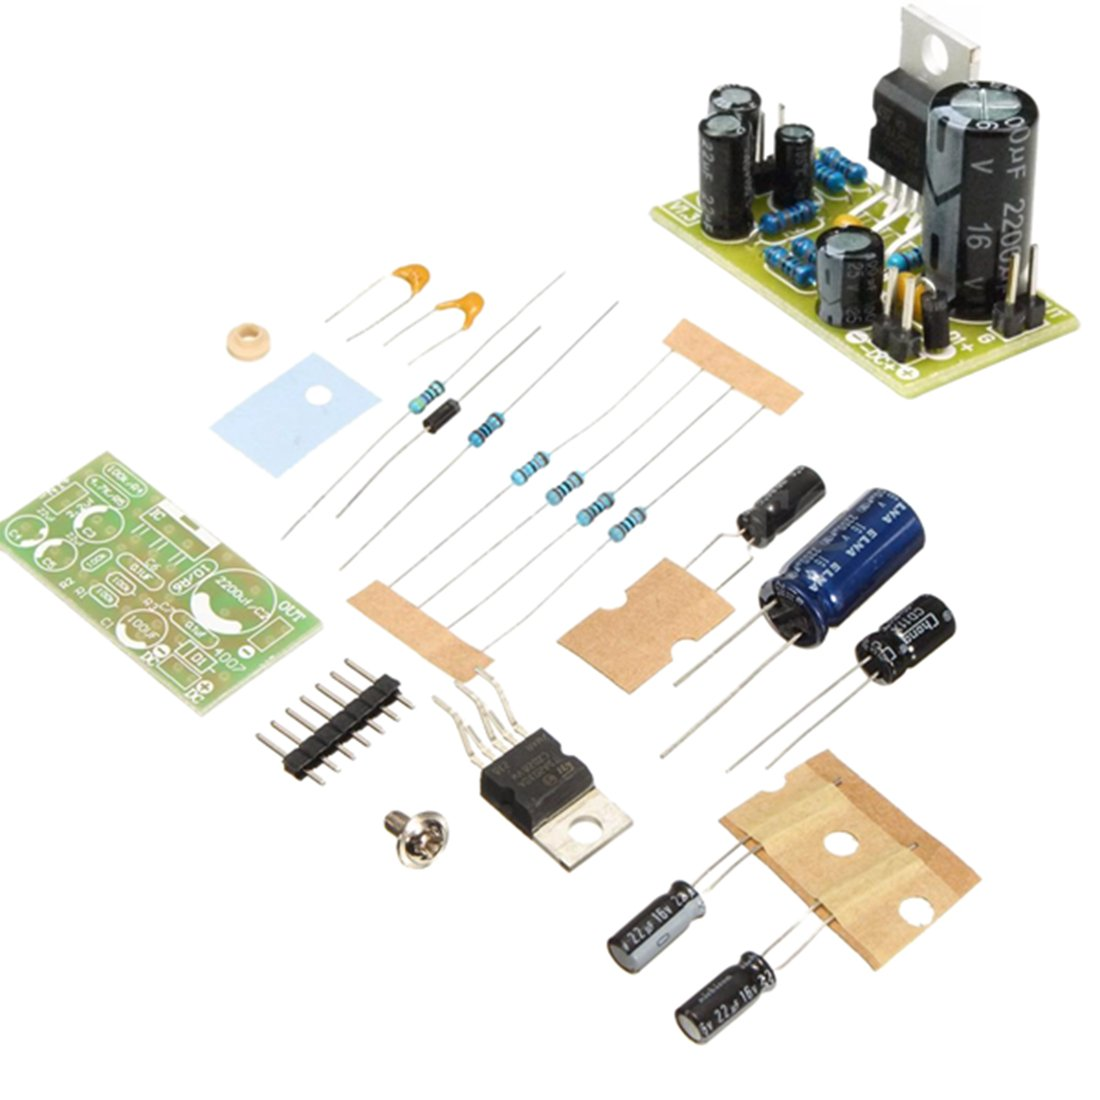 TOOGOO TDA2030A Audio Power Amplifier Board Module Mono Stereo Amp Subwoofer DIY Kits